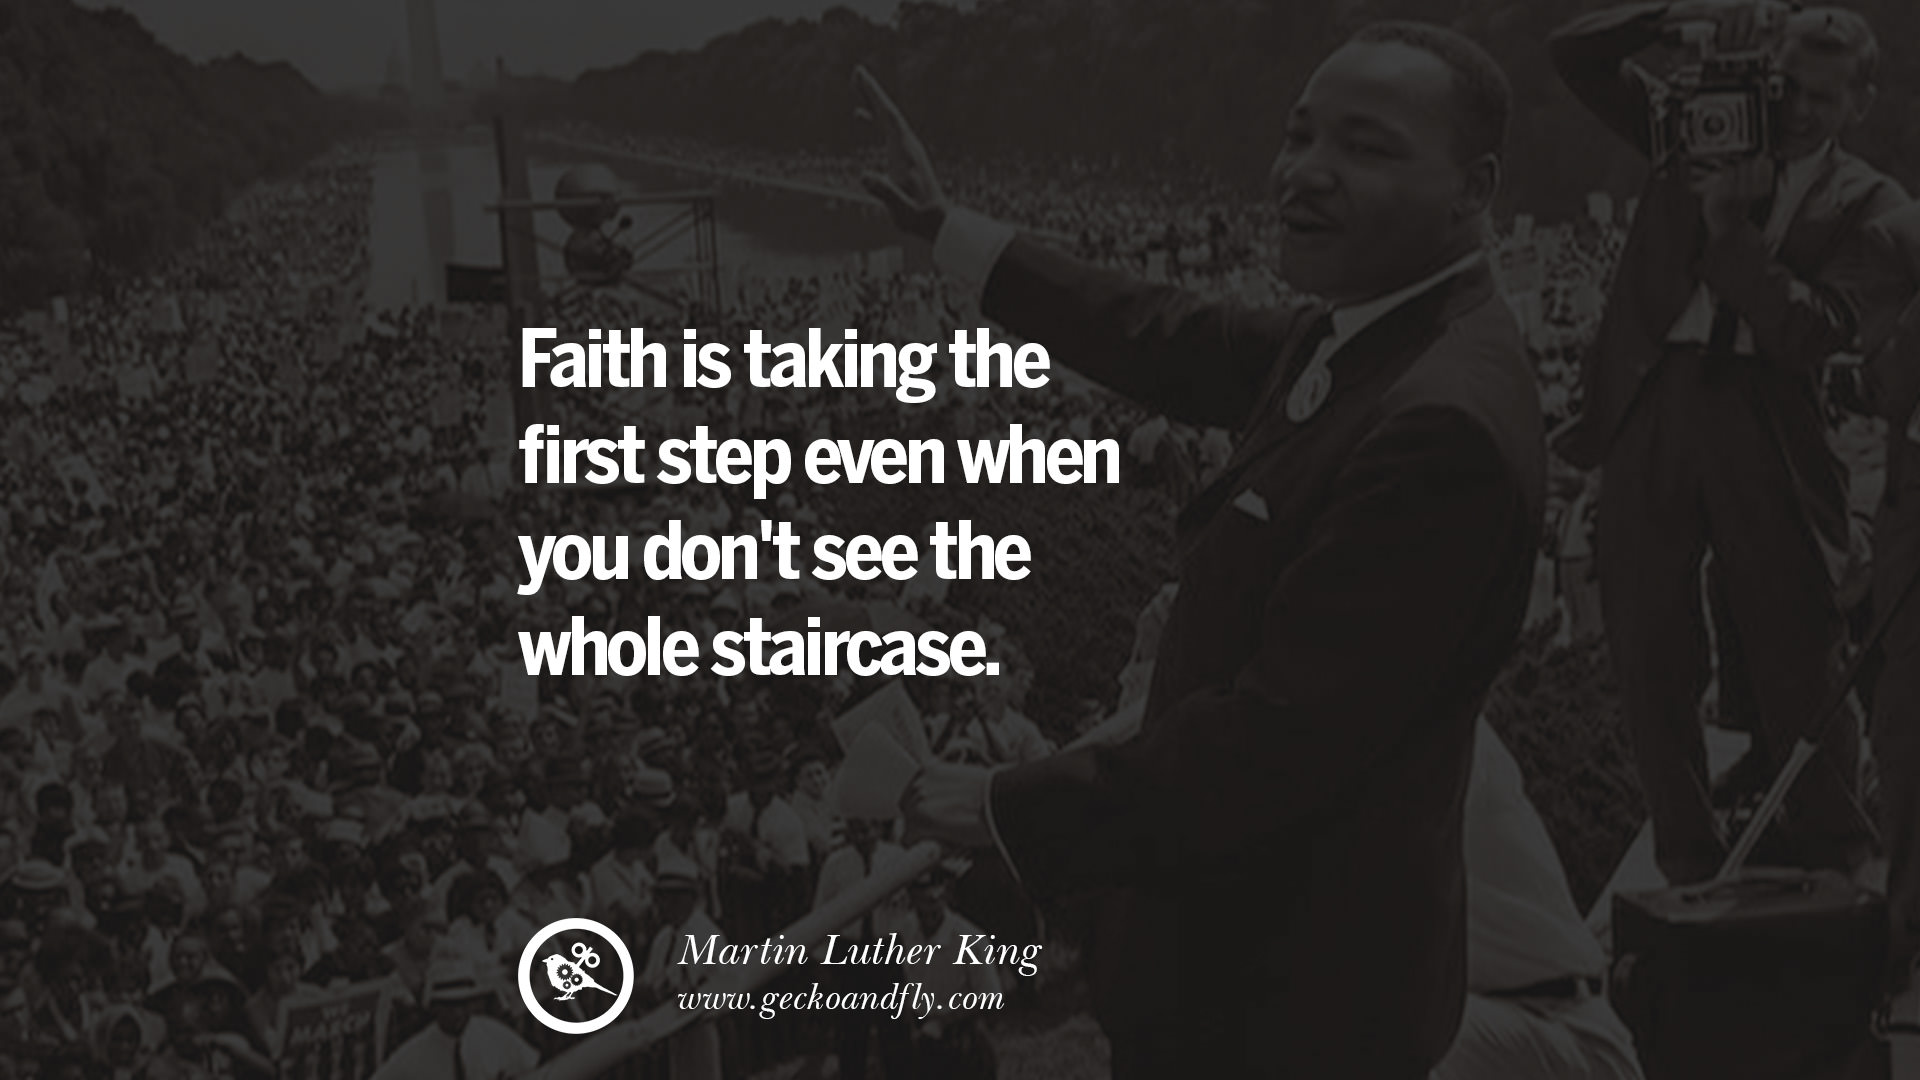 martin luther kings fight for equal rights in america During the less than 13 years of dr martin luther king, jr's leadership of the modern american civil rights movement, from december, 1955 until april 4, 1968.